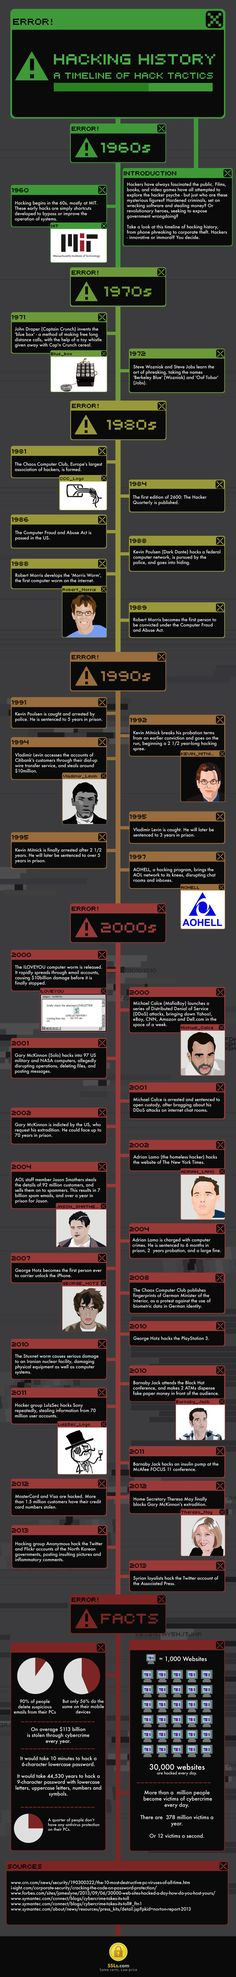 Hacking History - A Timeline Of Hack Tactics [Infographic]